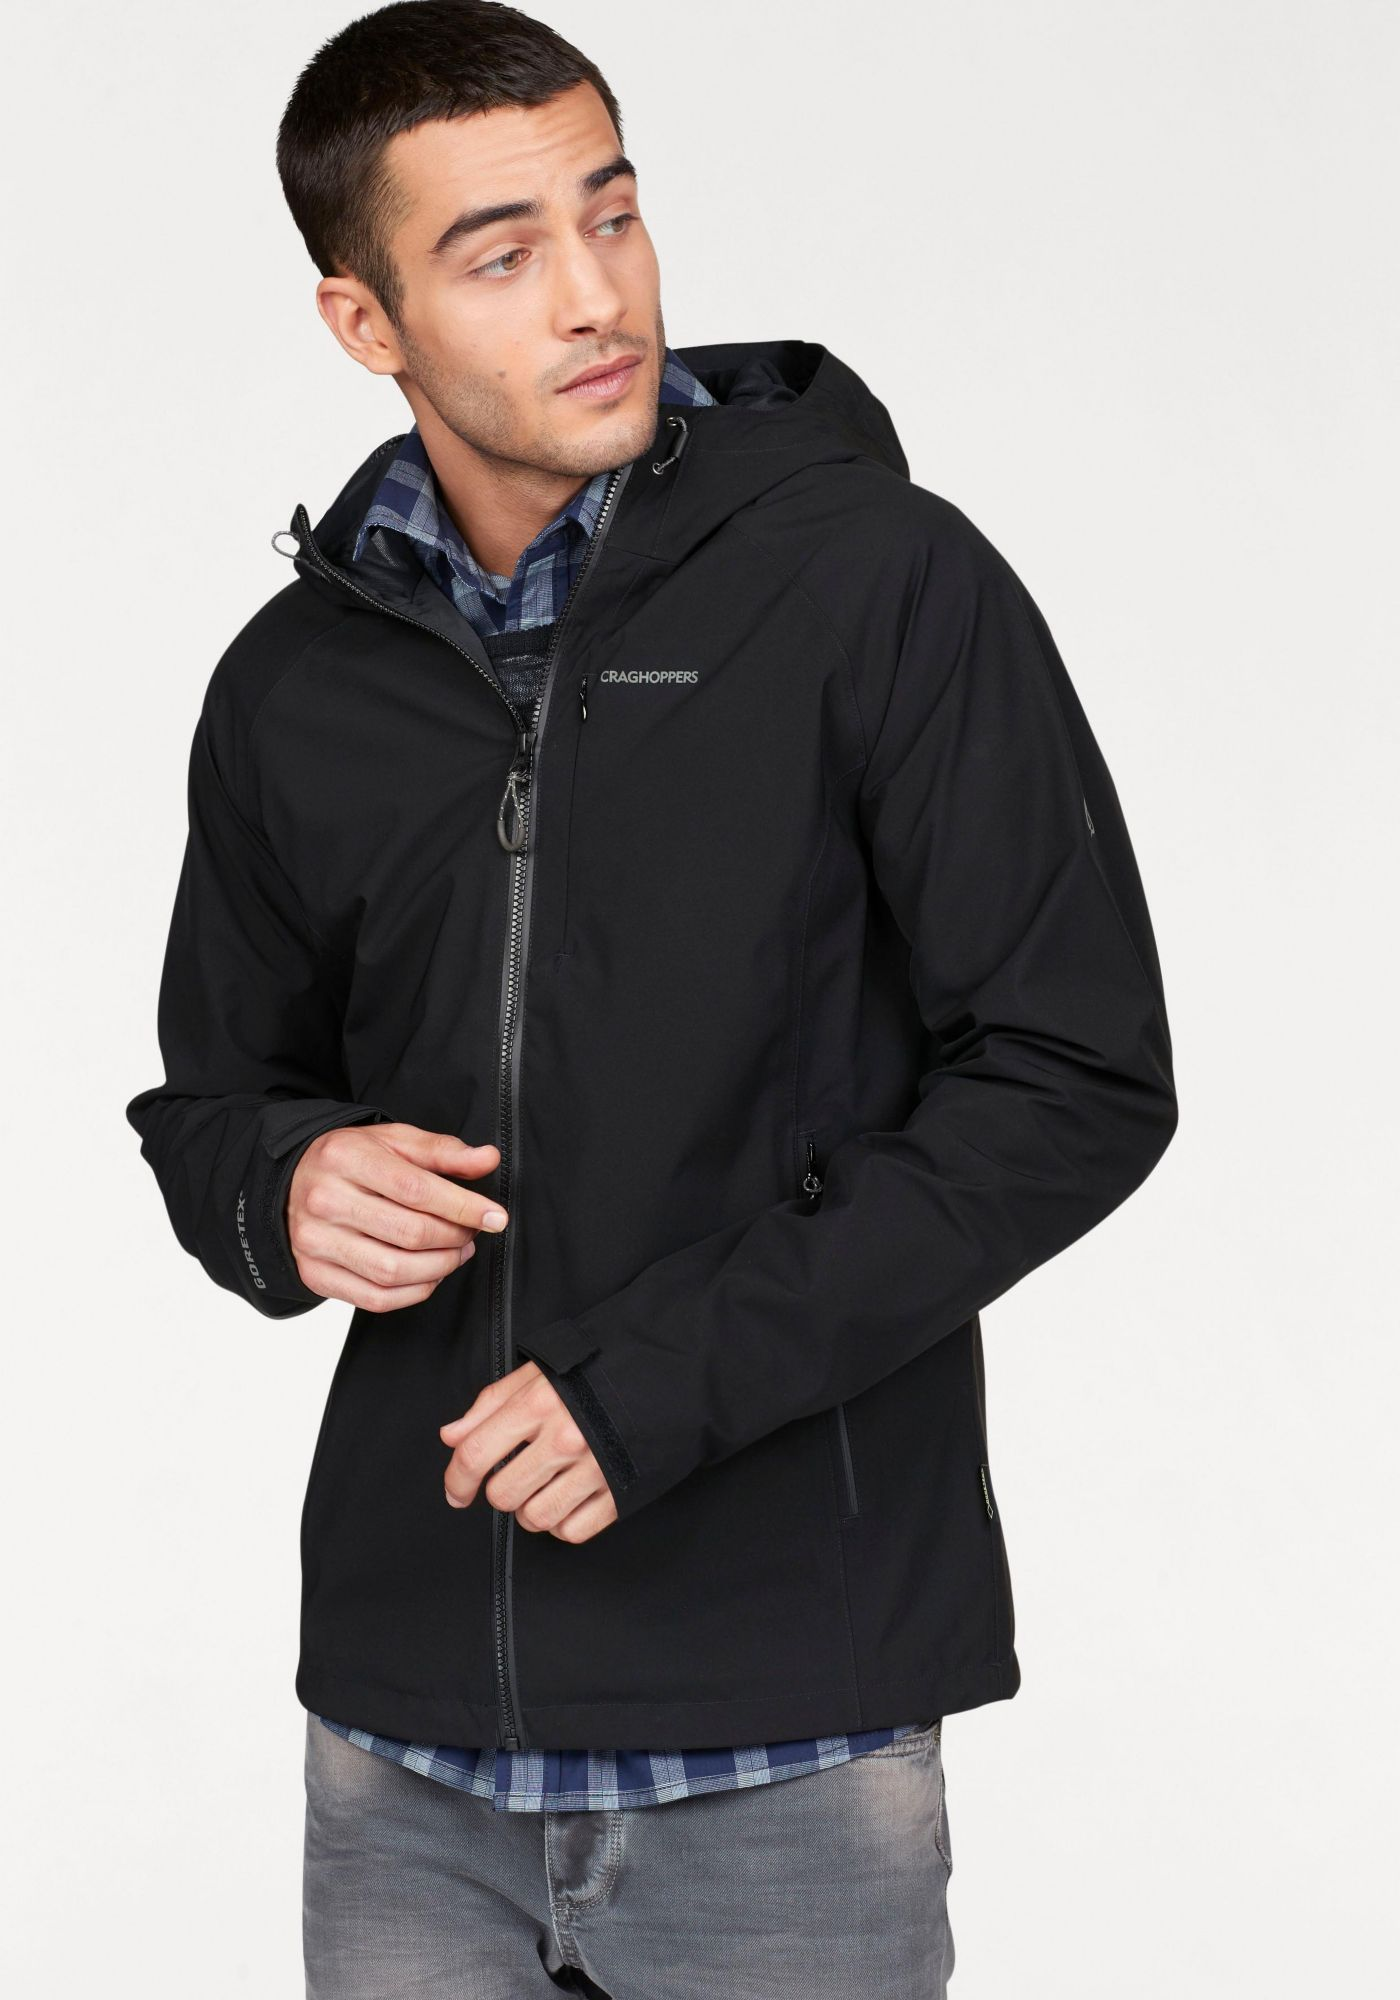 CRAGHOPPERS Craghoppers Funktionsjacke »JEROME GORE-TEX®«